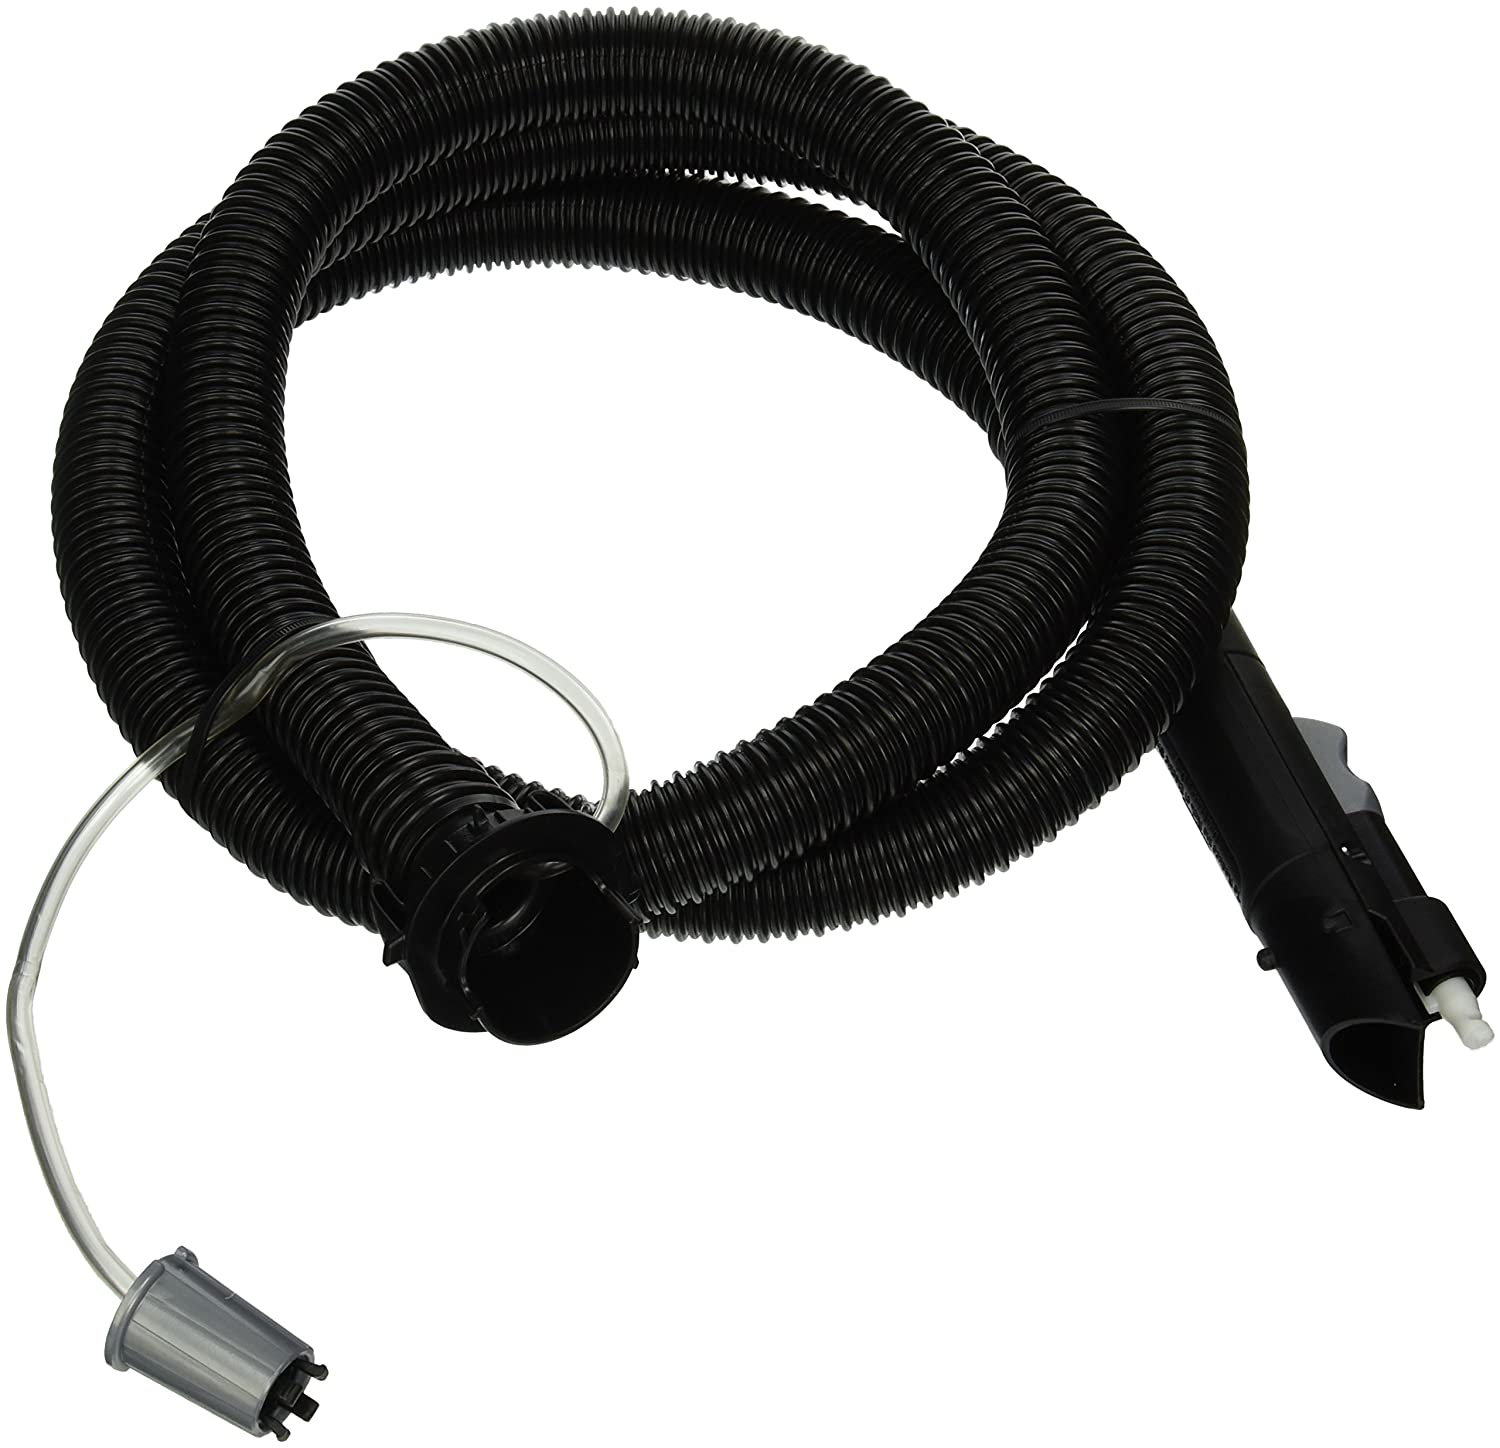 Hoover Hose, Model Fh50150